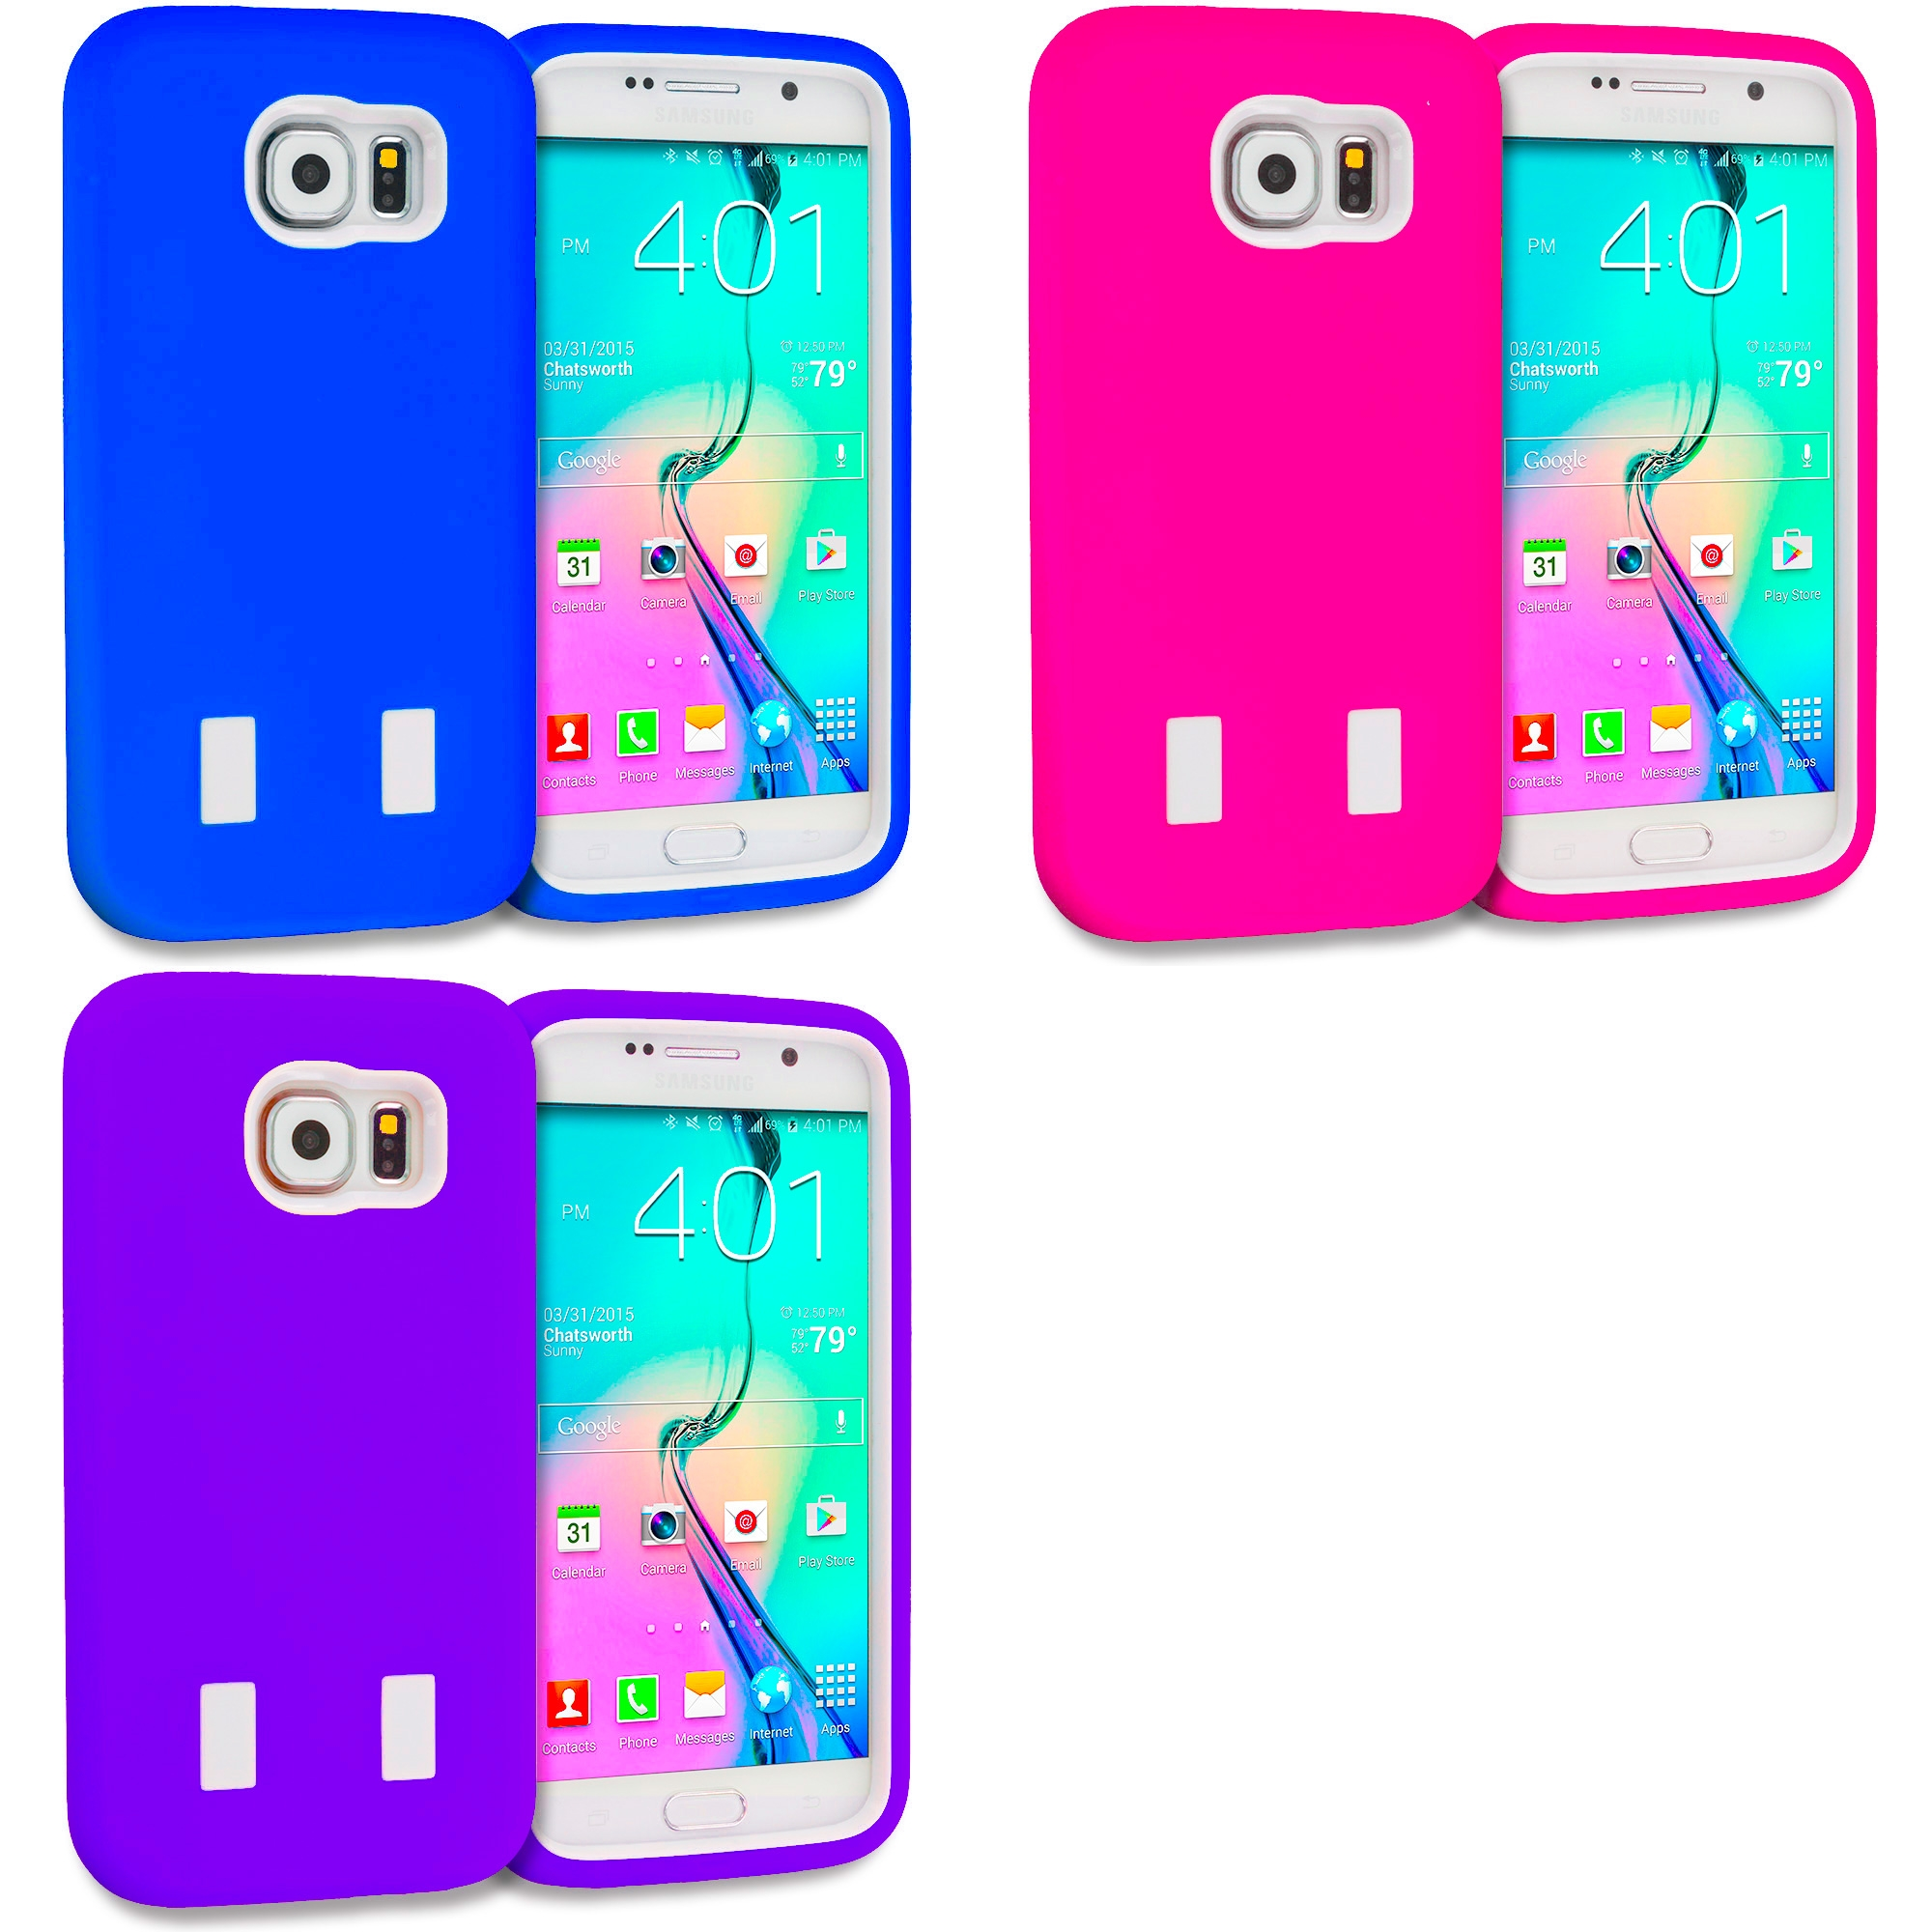 Samsung Galaxy S6 Combo Pack : Blue / White Hybrid Deluxe Hard/Soft Case Cover